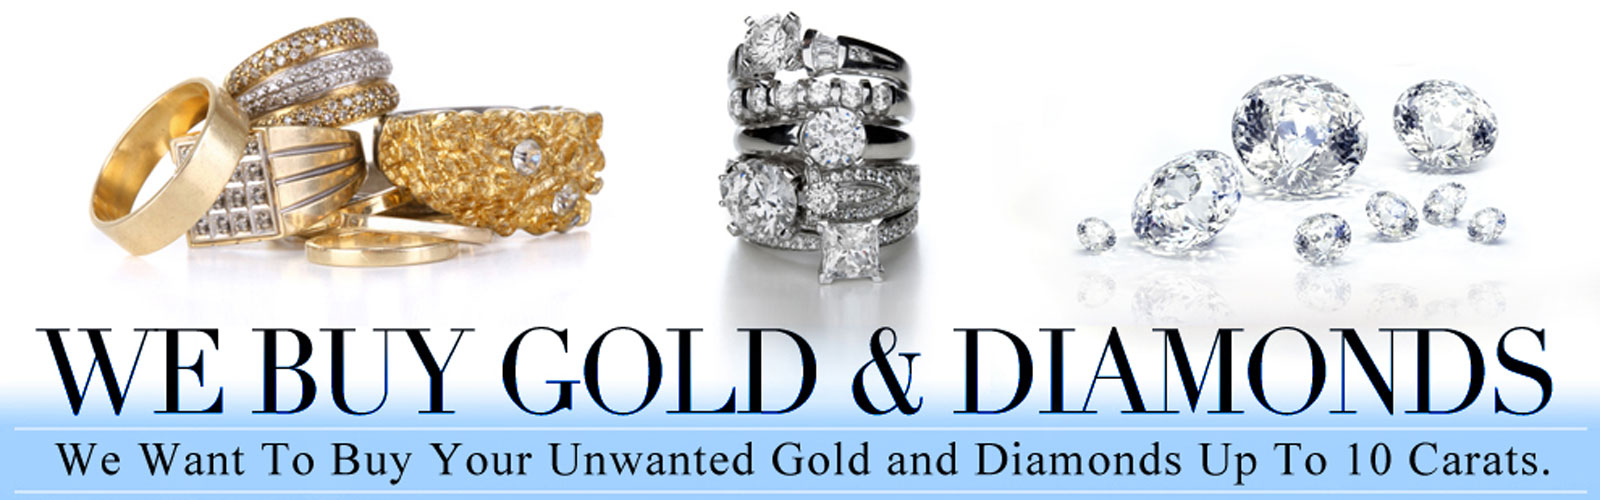 We Buy Gold & Diamonds